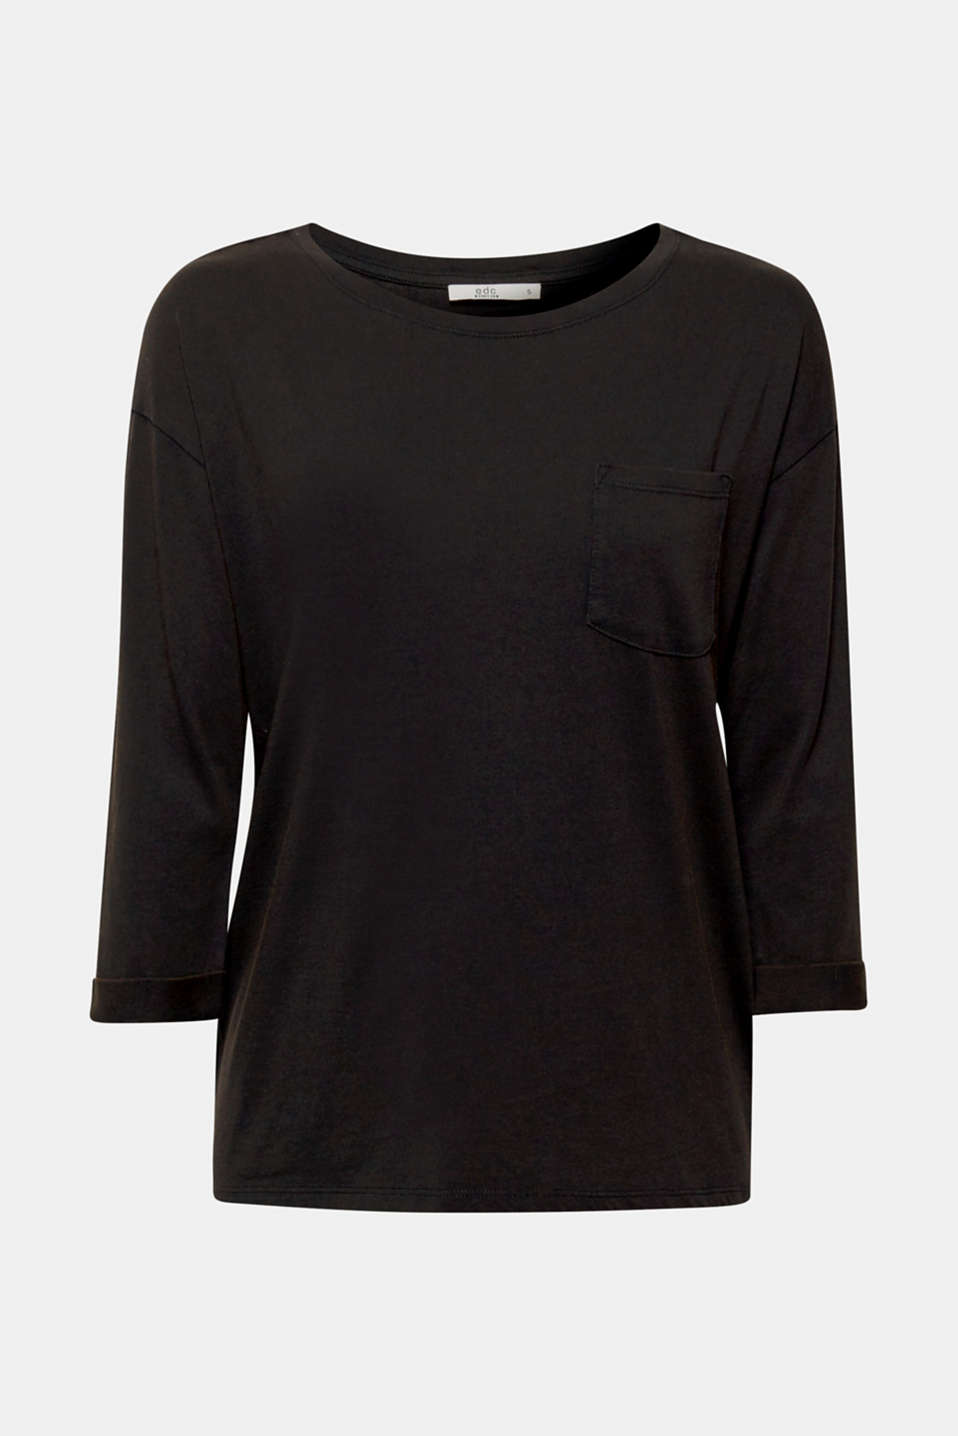 Top in a garment-washed look, 100% cotton, BLACK, detail image number 7